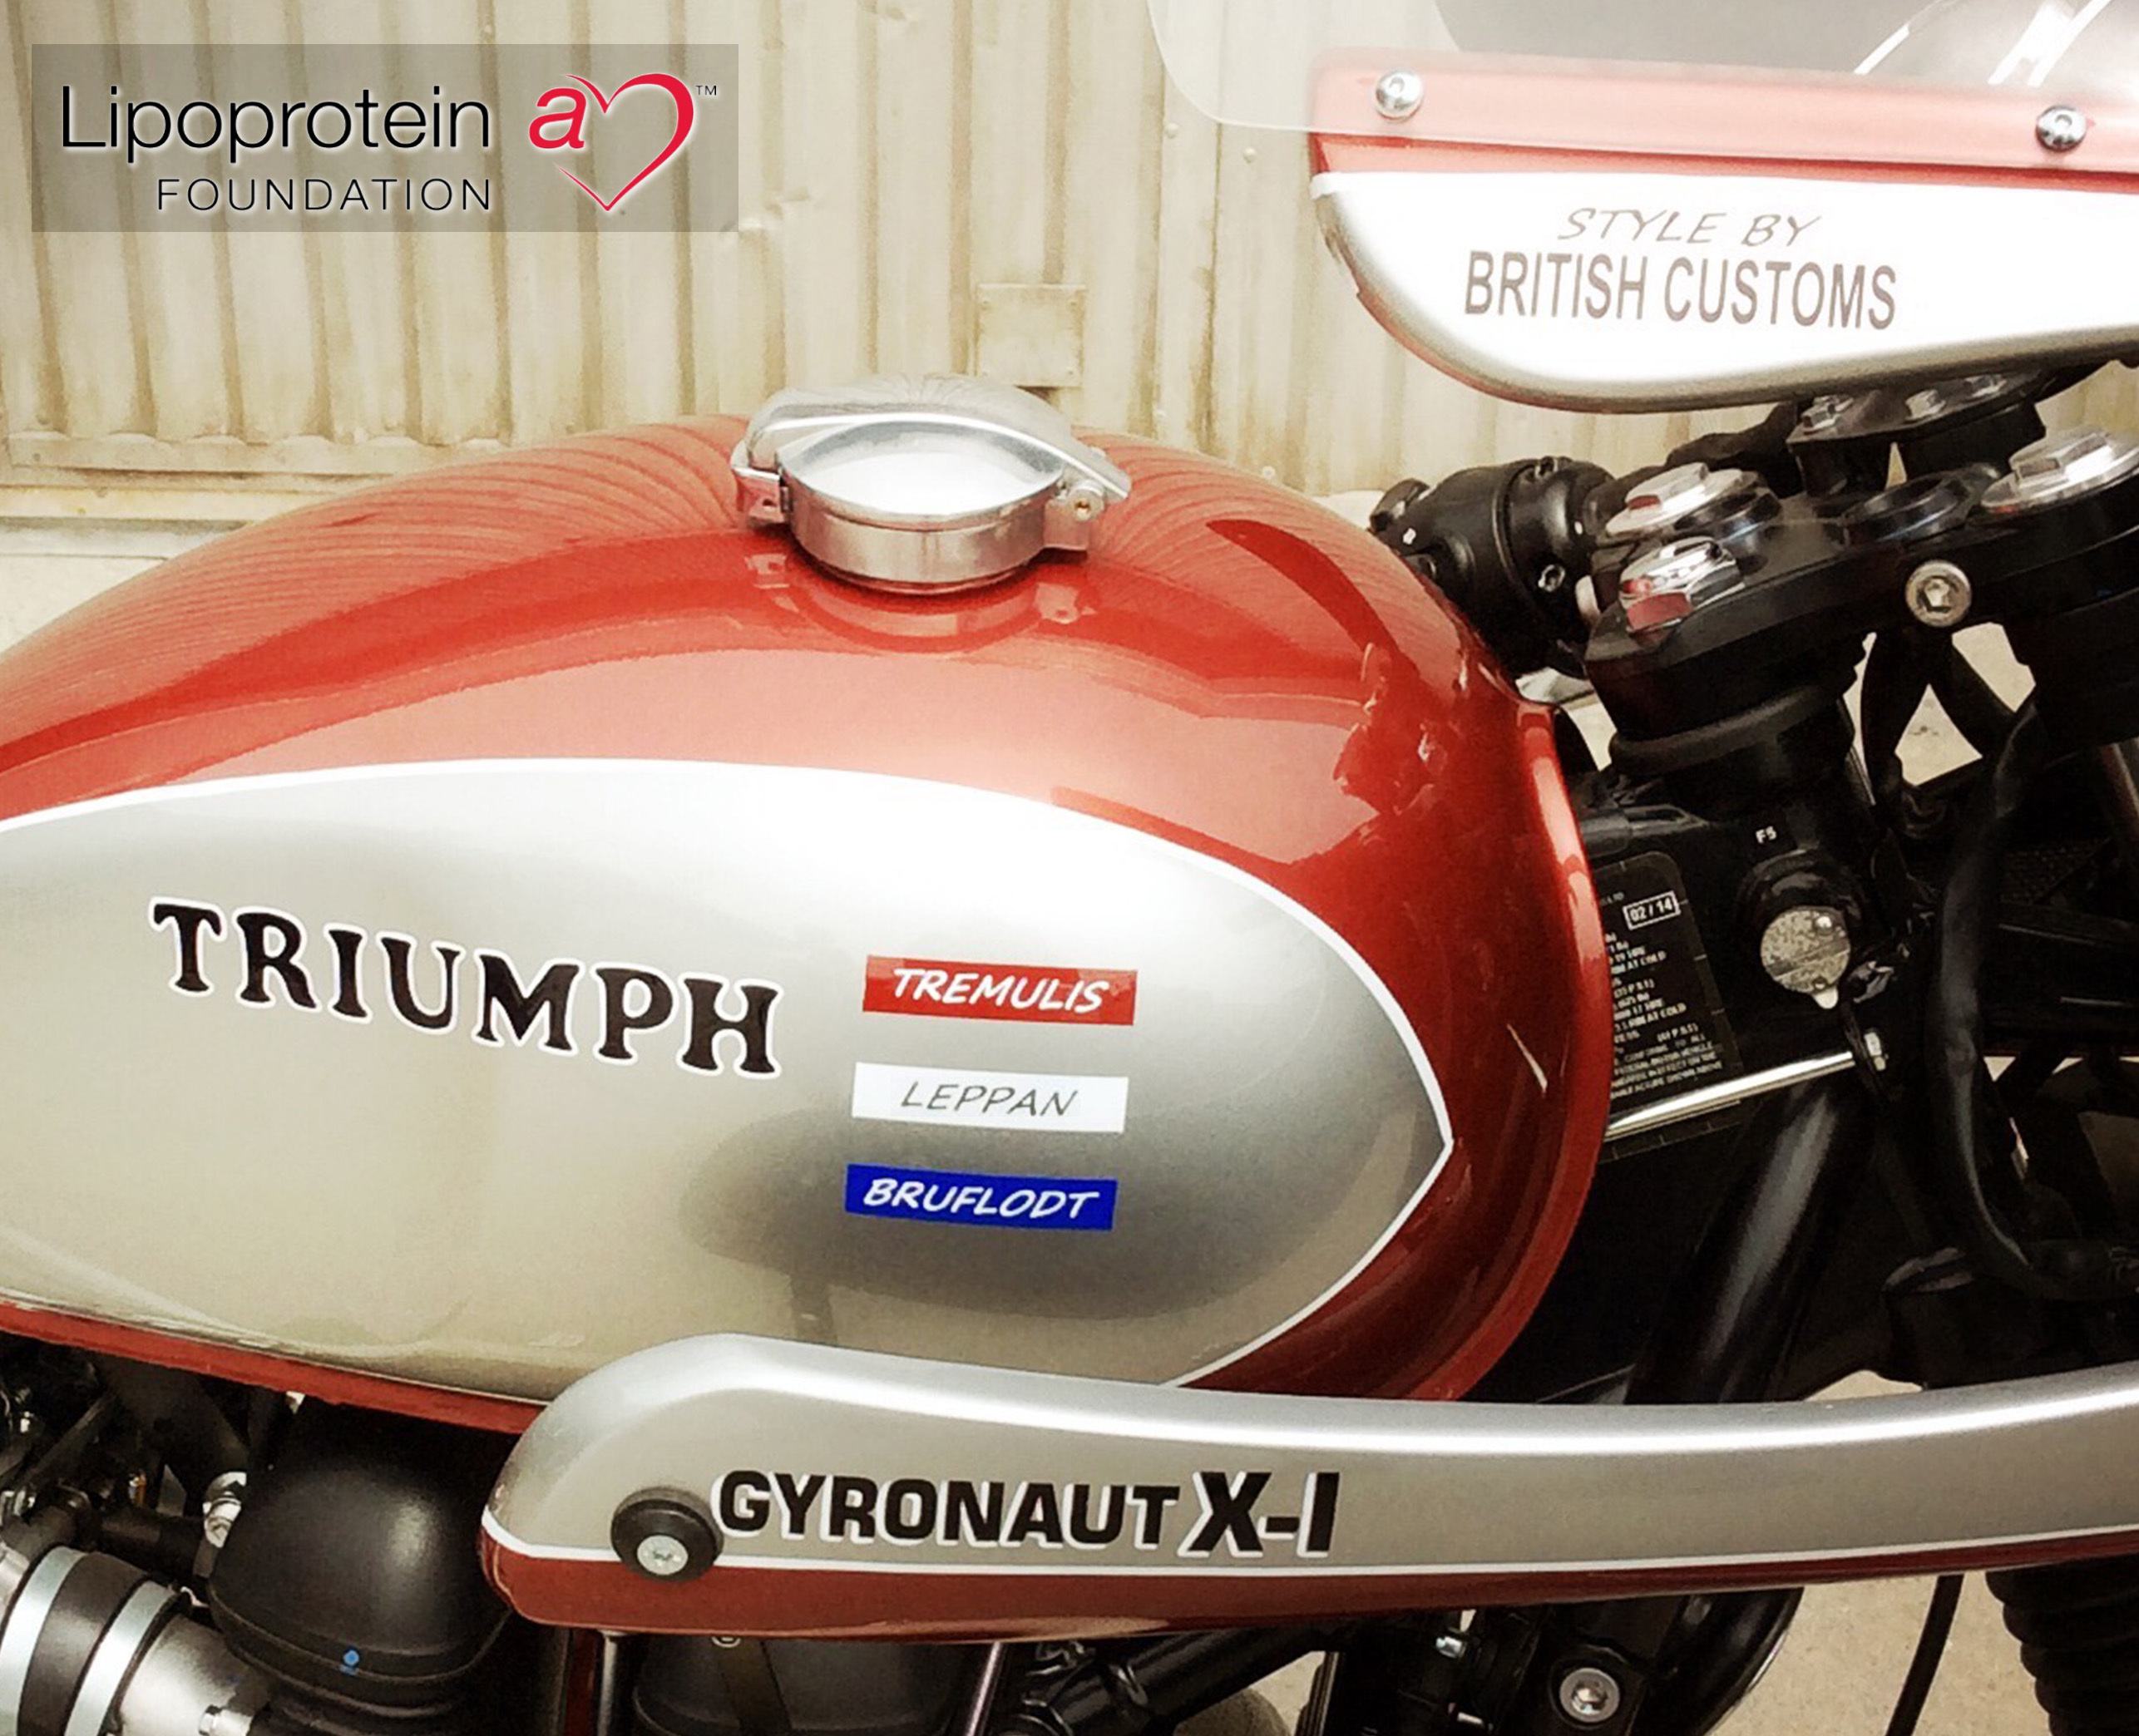 Lipoproteina Foundation To Auction Off Donated Triumph Bonneville